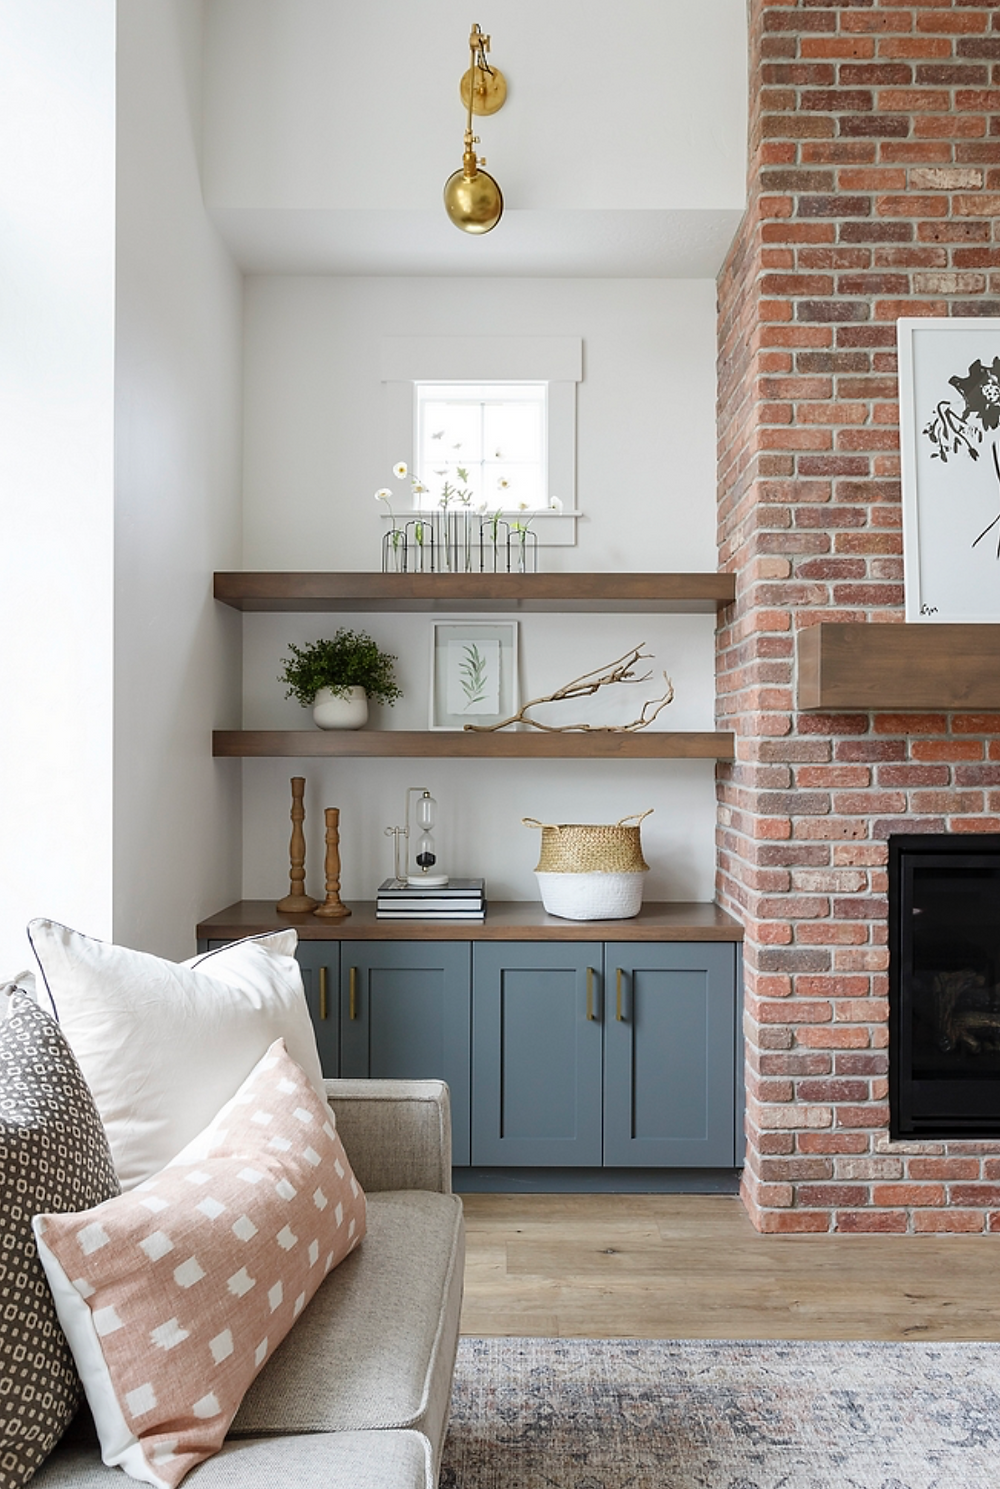 A modern living room with open wood shelves next to a brick fireplace and dusty blue grey cabinets styled with a basket, a plant, art and books.